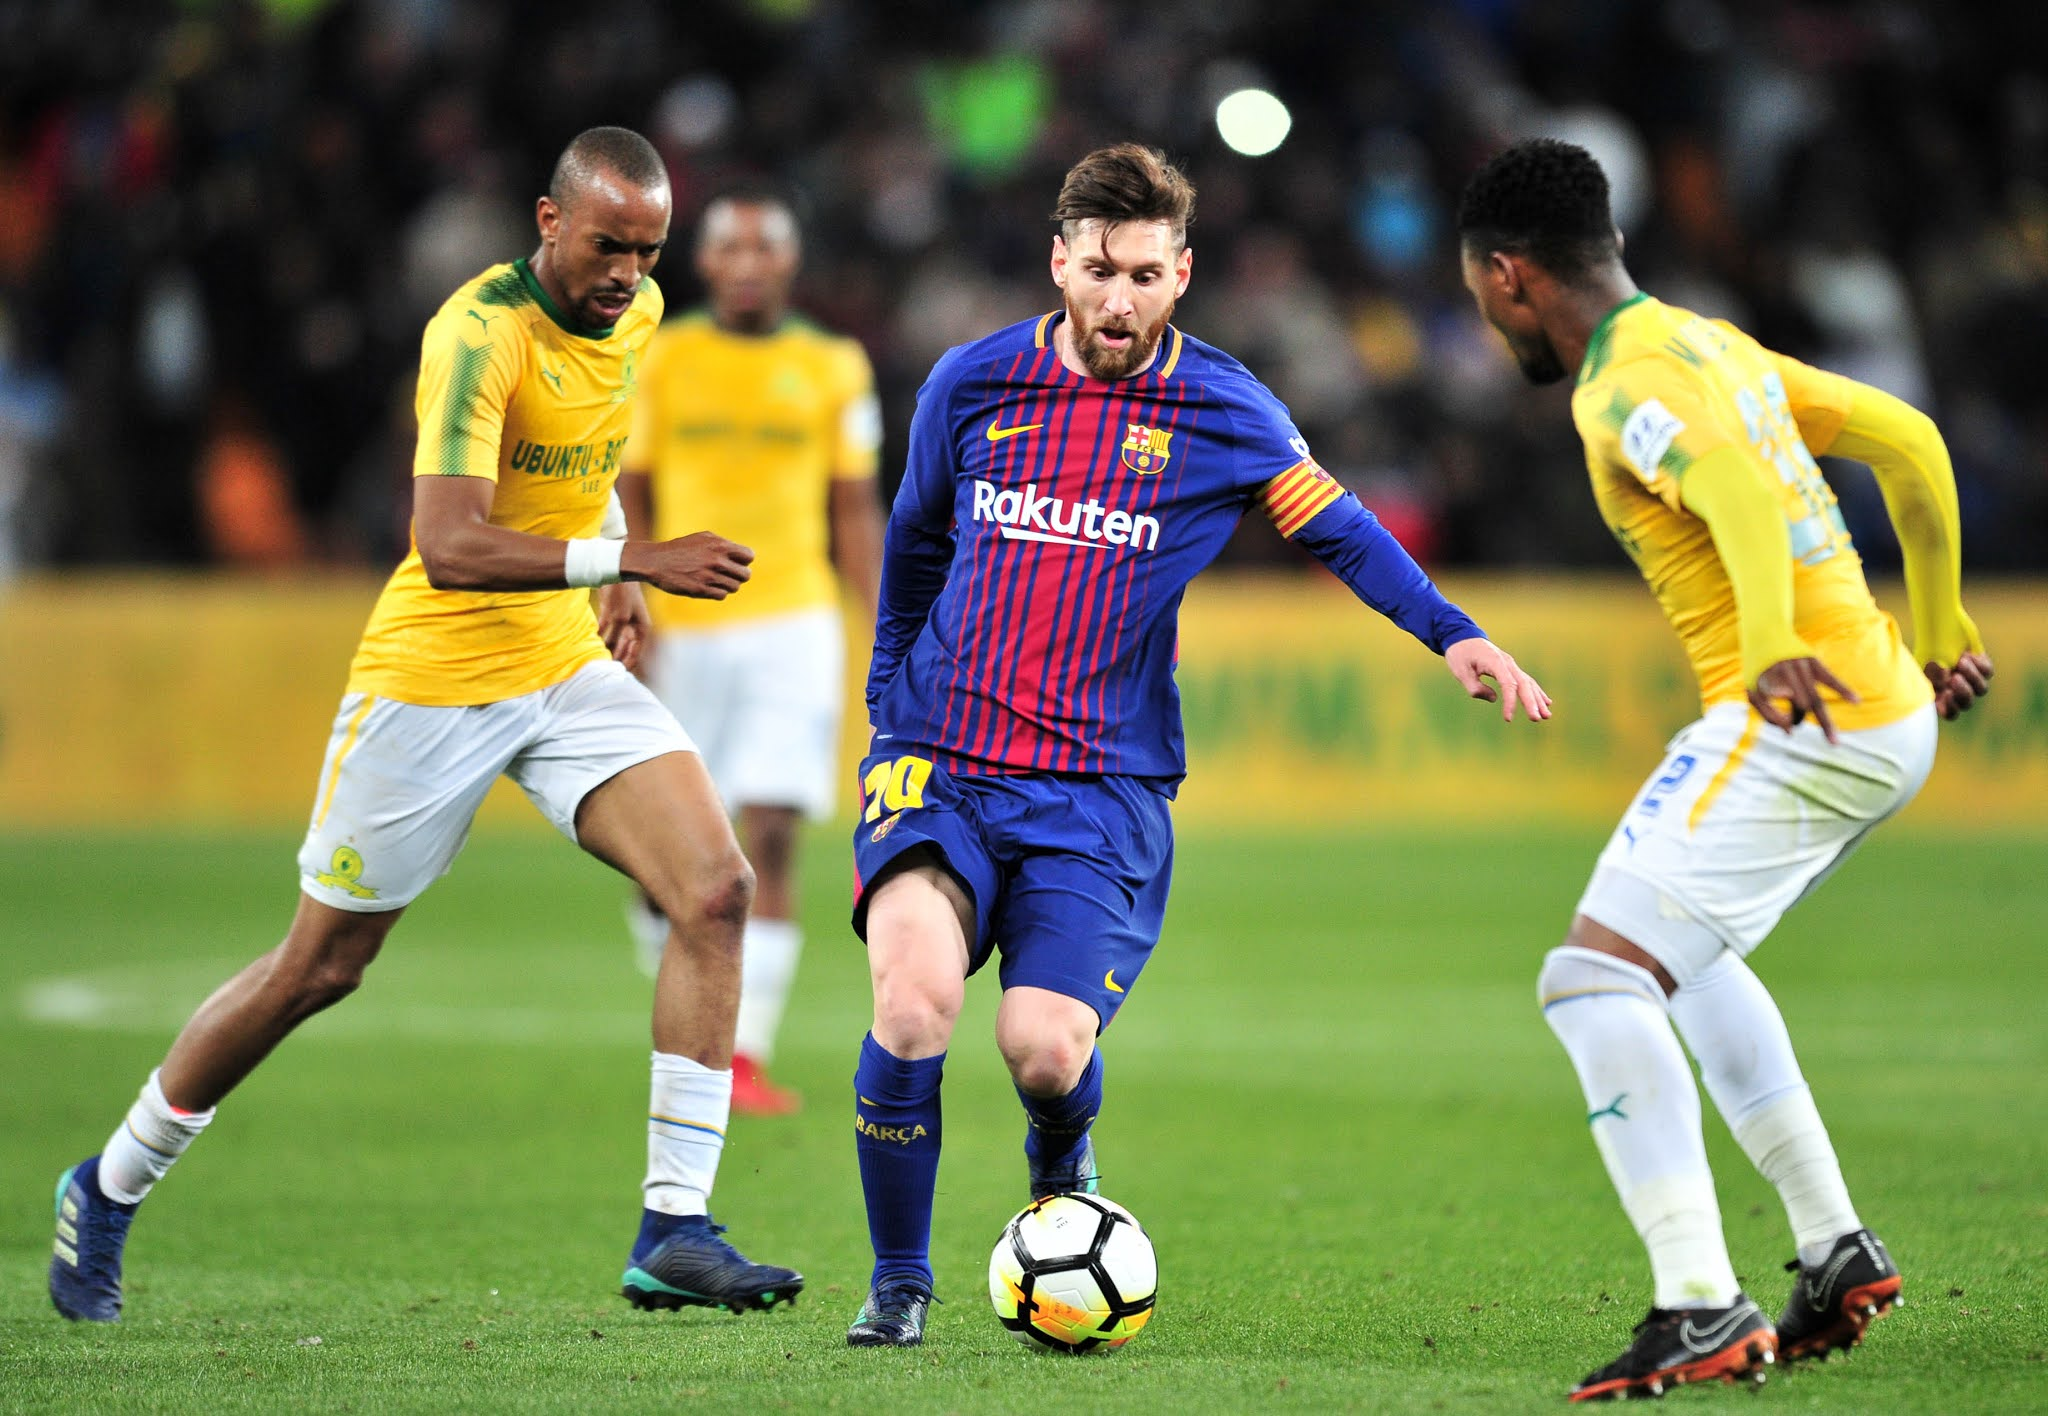 Lionel Messi in action against Mamelodi Sundowns at the 2018 Nelson Mandela Centenary Cup